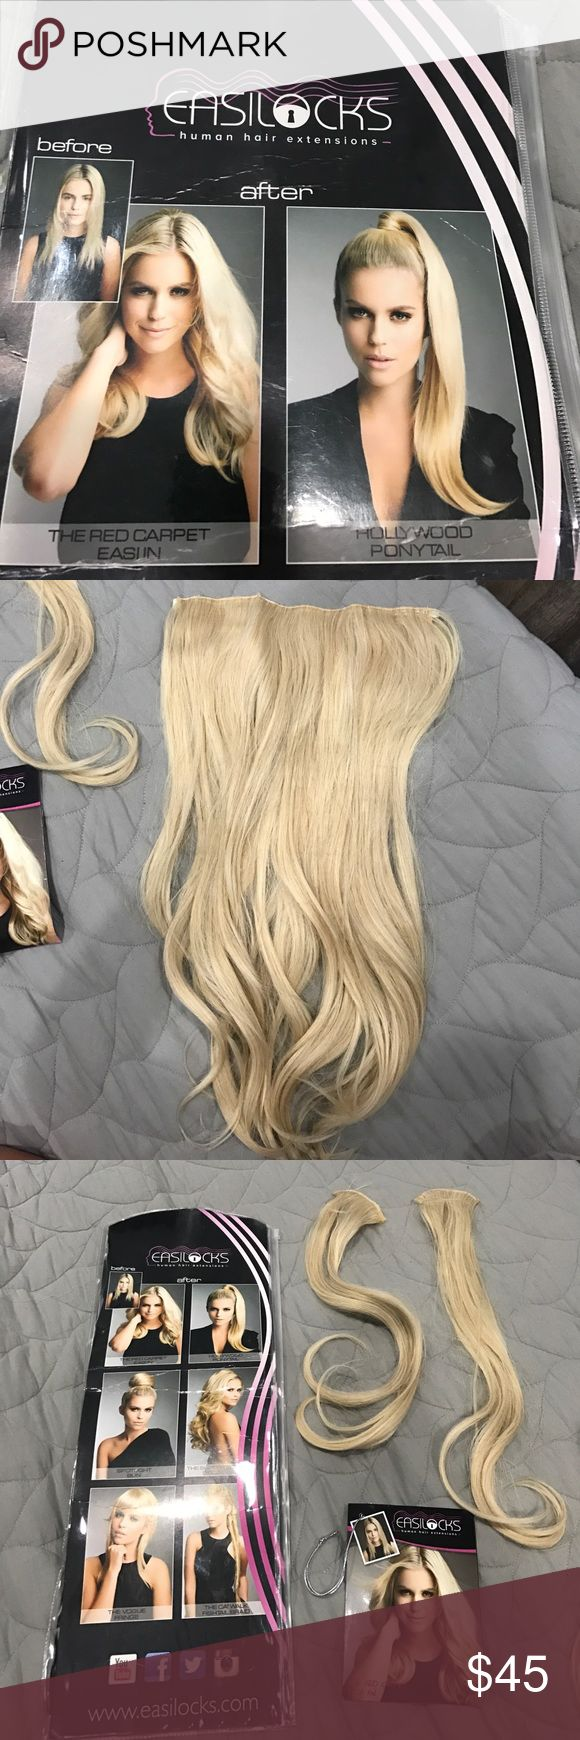 Ash blond hair extensions Easilocks Ash blond, clip in, 18 inch hair extensions. Synthetic hair. Worn once, hair color does not match mine. Make an offer, you never know! ☺️ Accessories